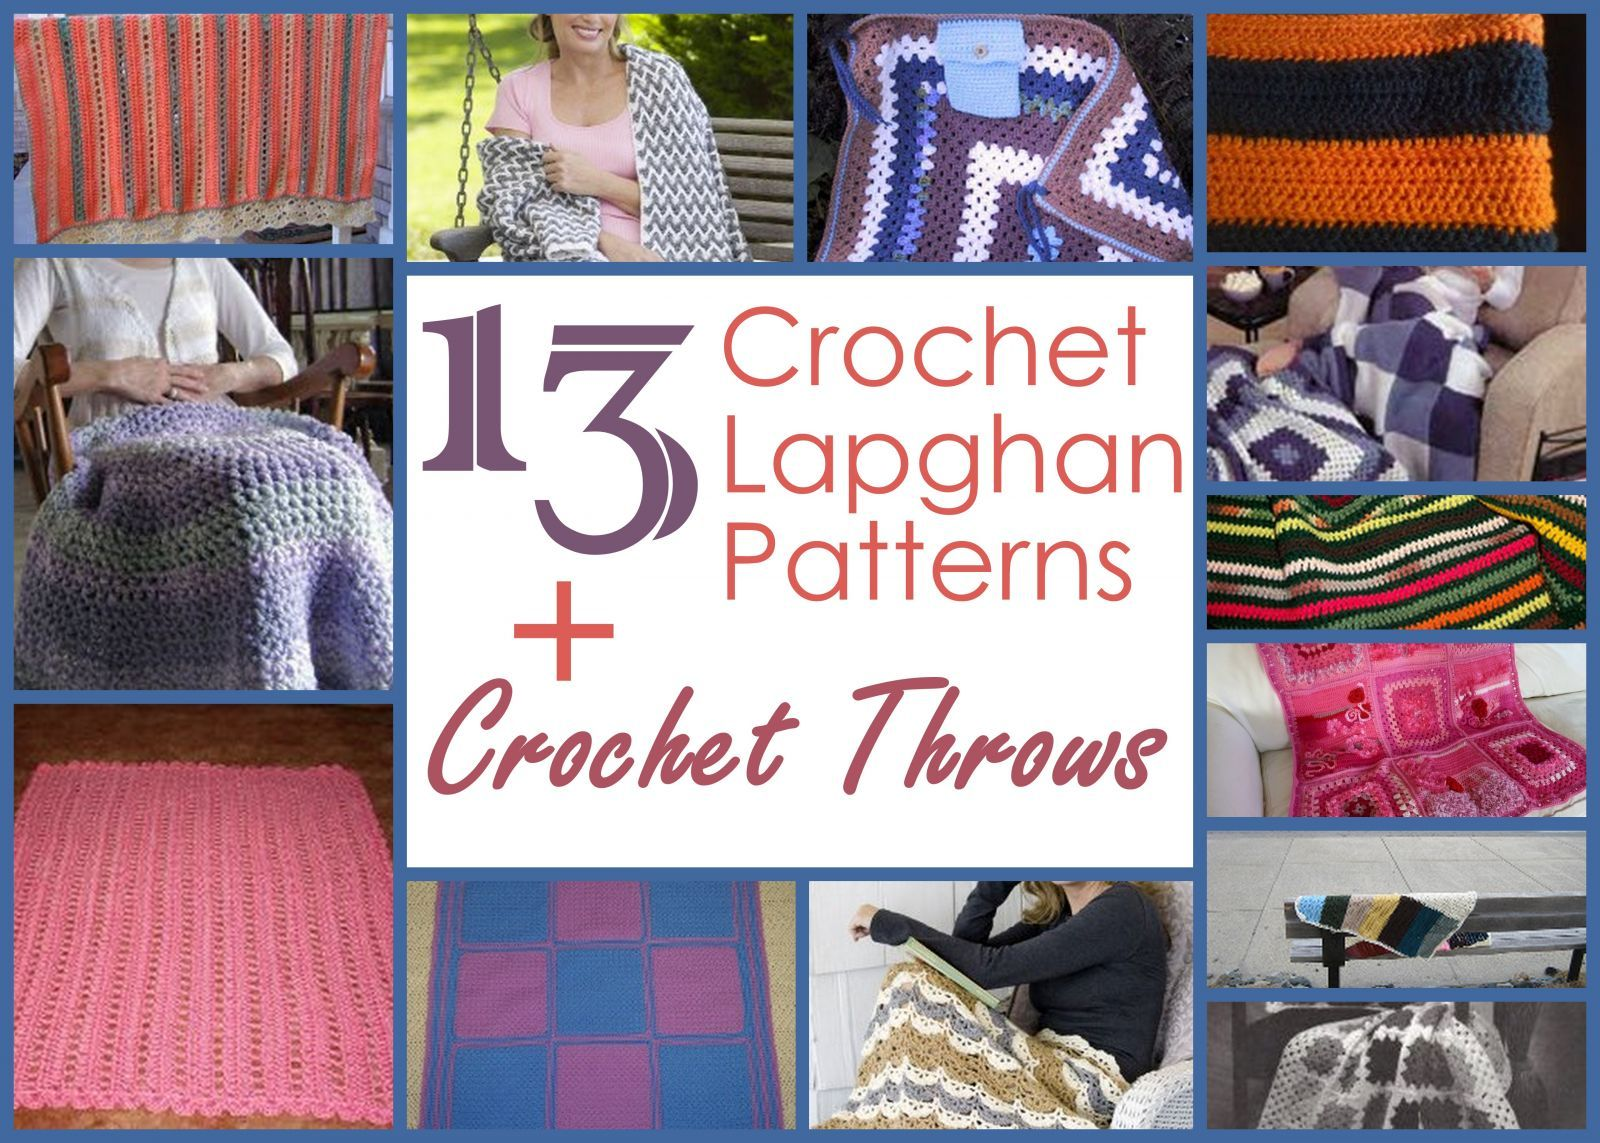 13 crochet lapghan patterns free crochet afghan patterns 13 crochet lapghan patterns free crochet afghan bankloansurffo Choice Image